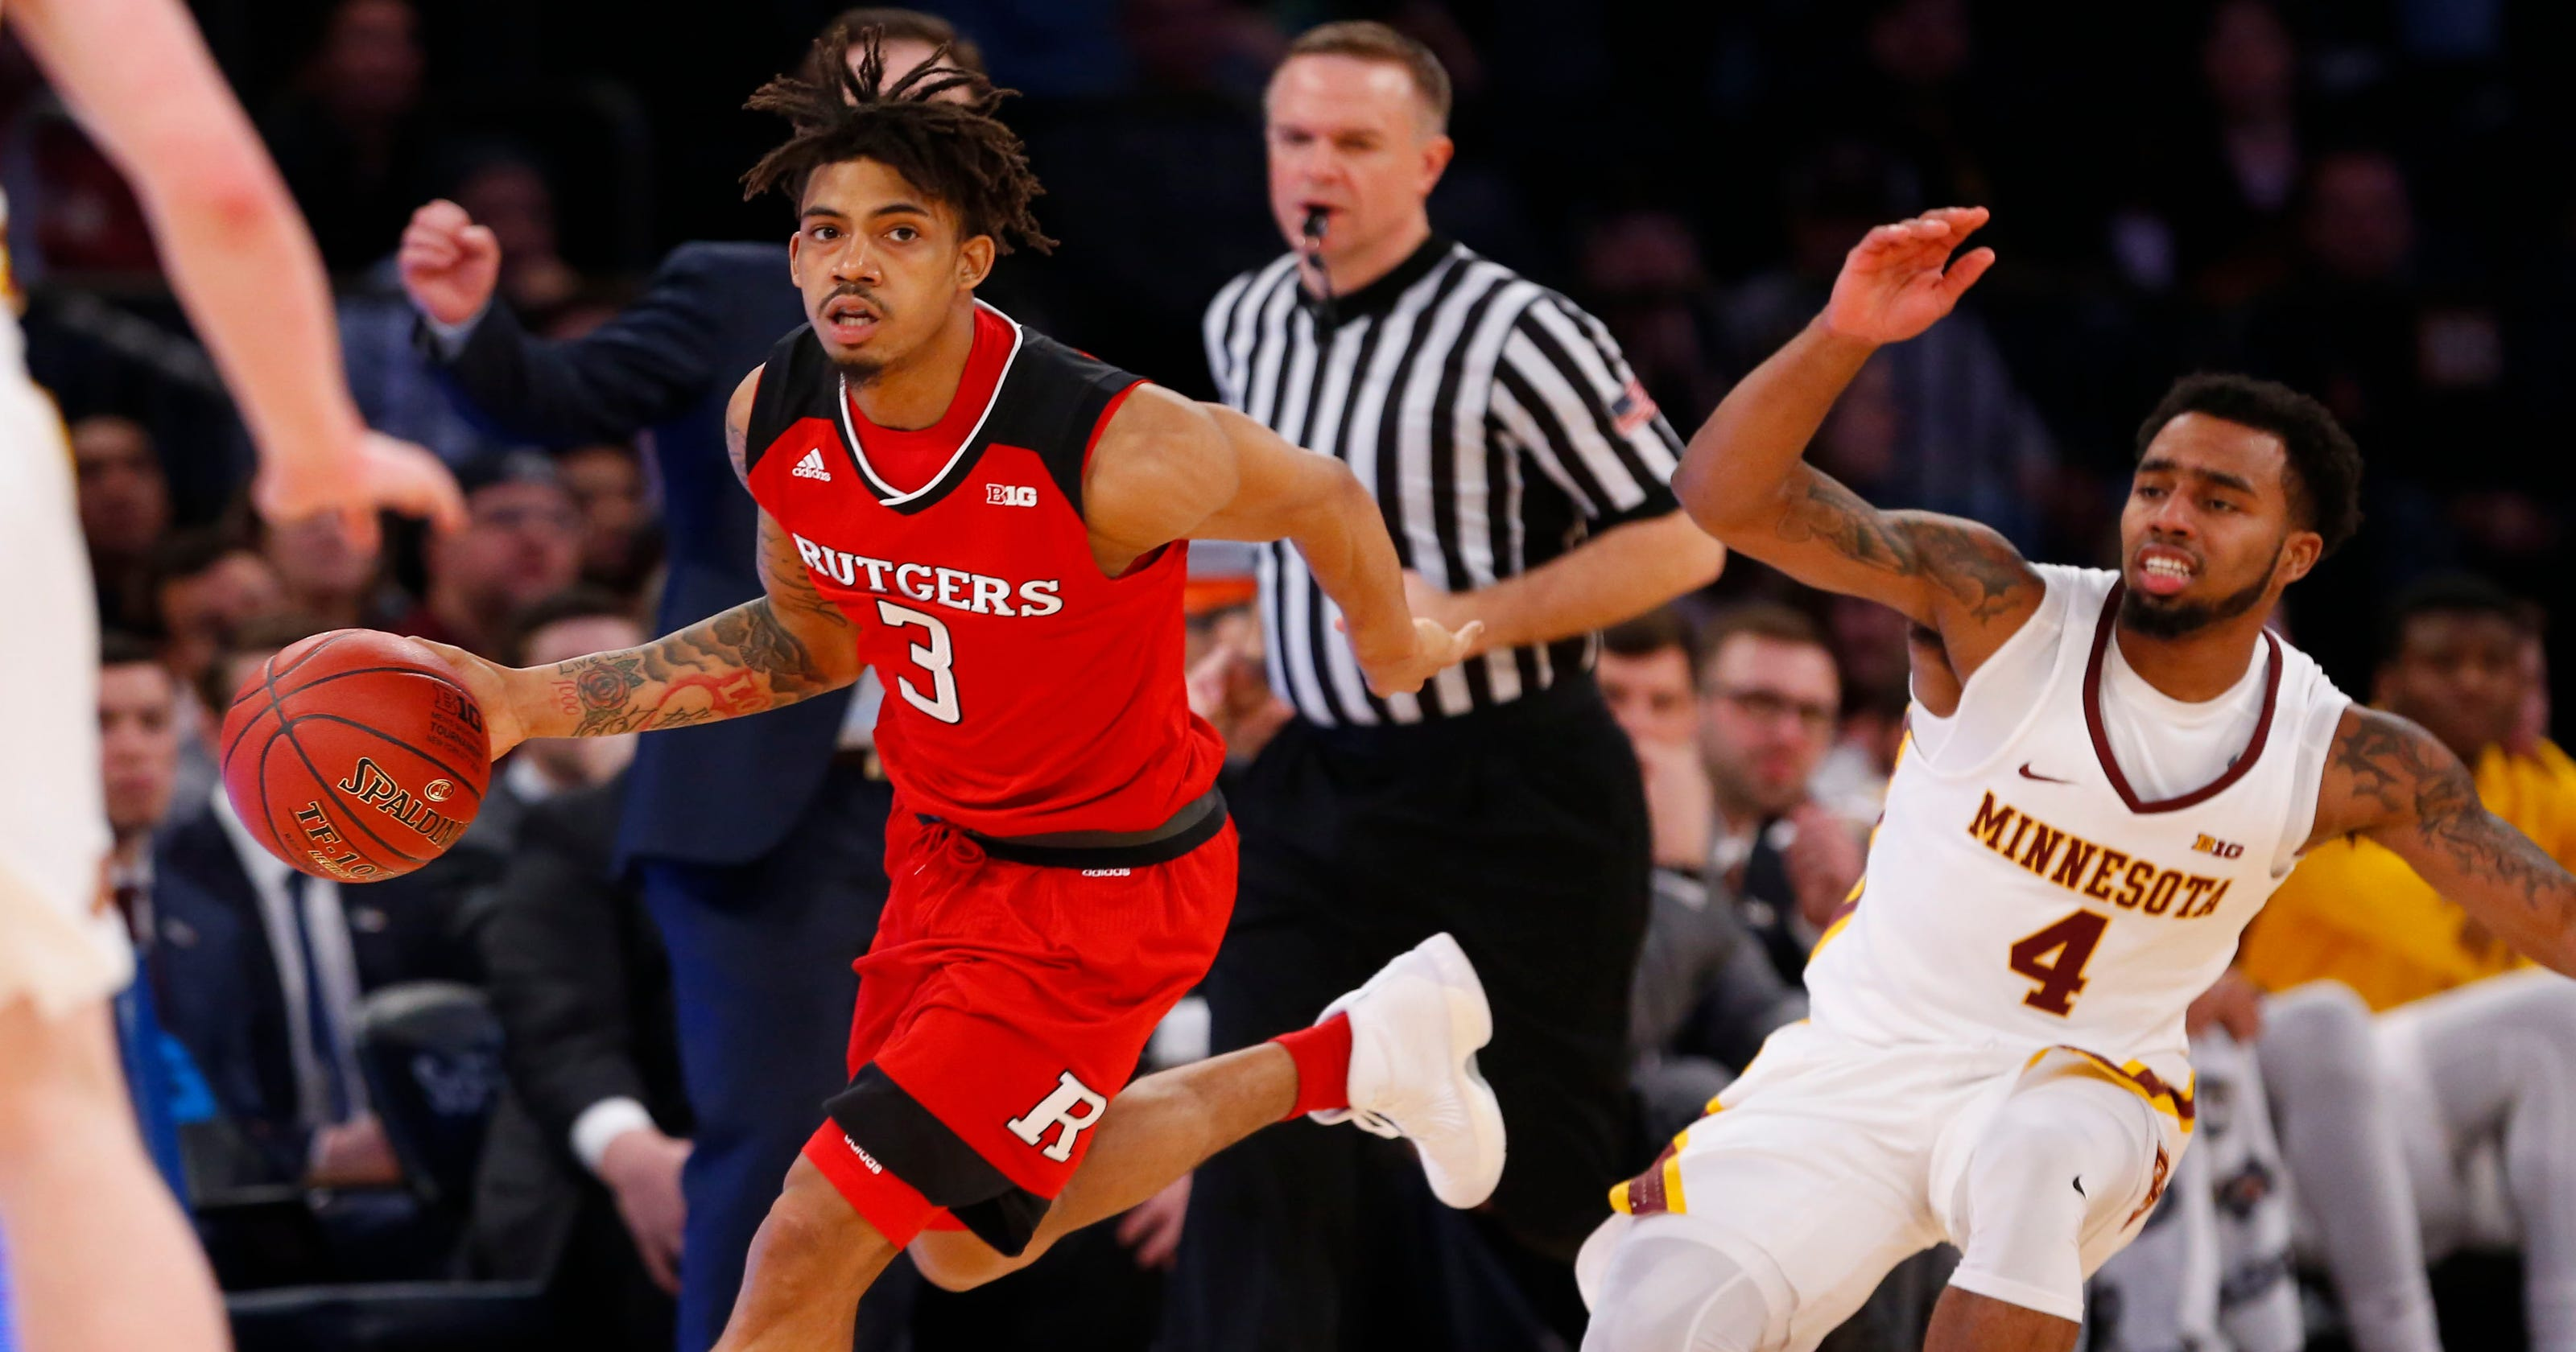 c895ee4b26ad Rutgers basketball  Is Corey Sanders  Rutgers career coming to a close